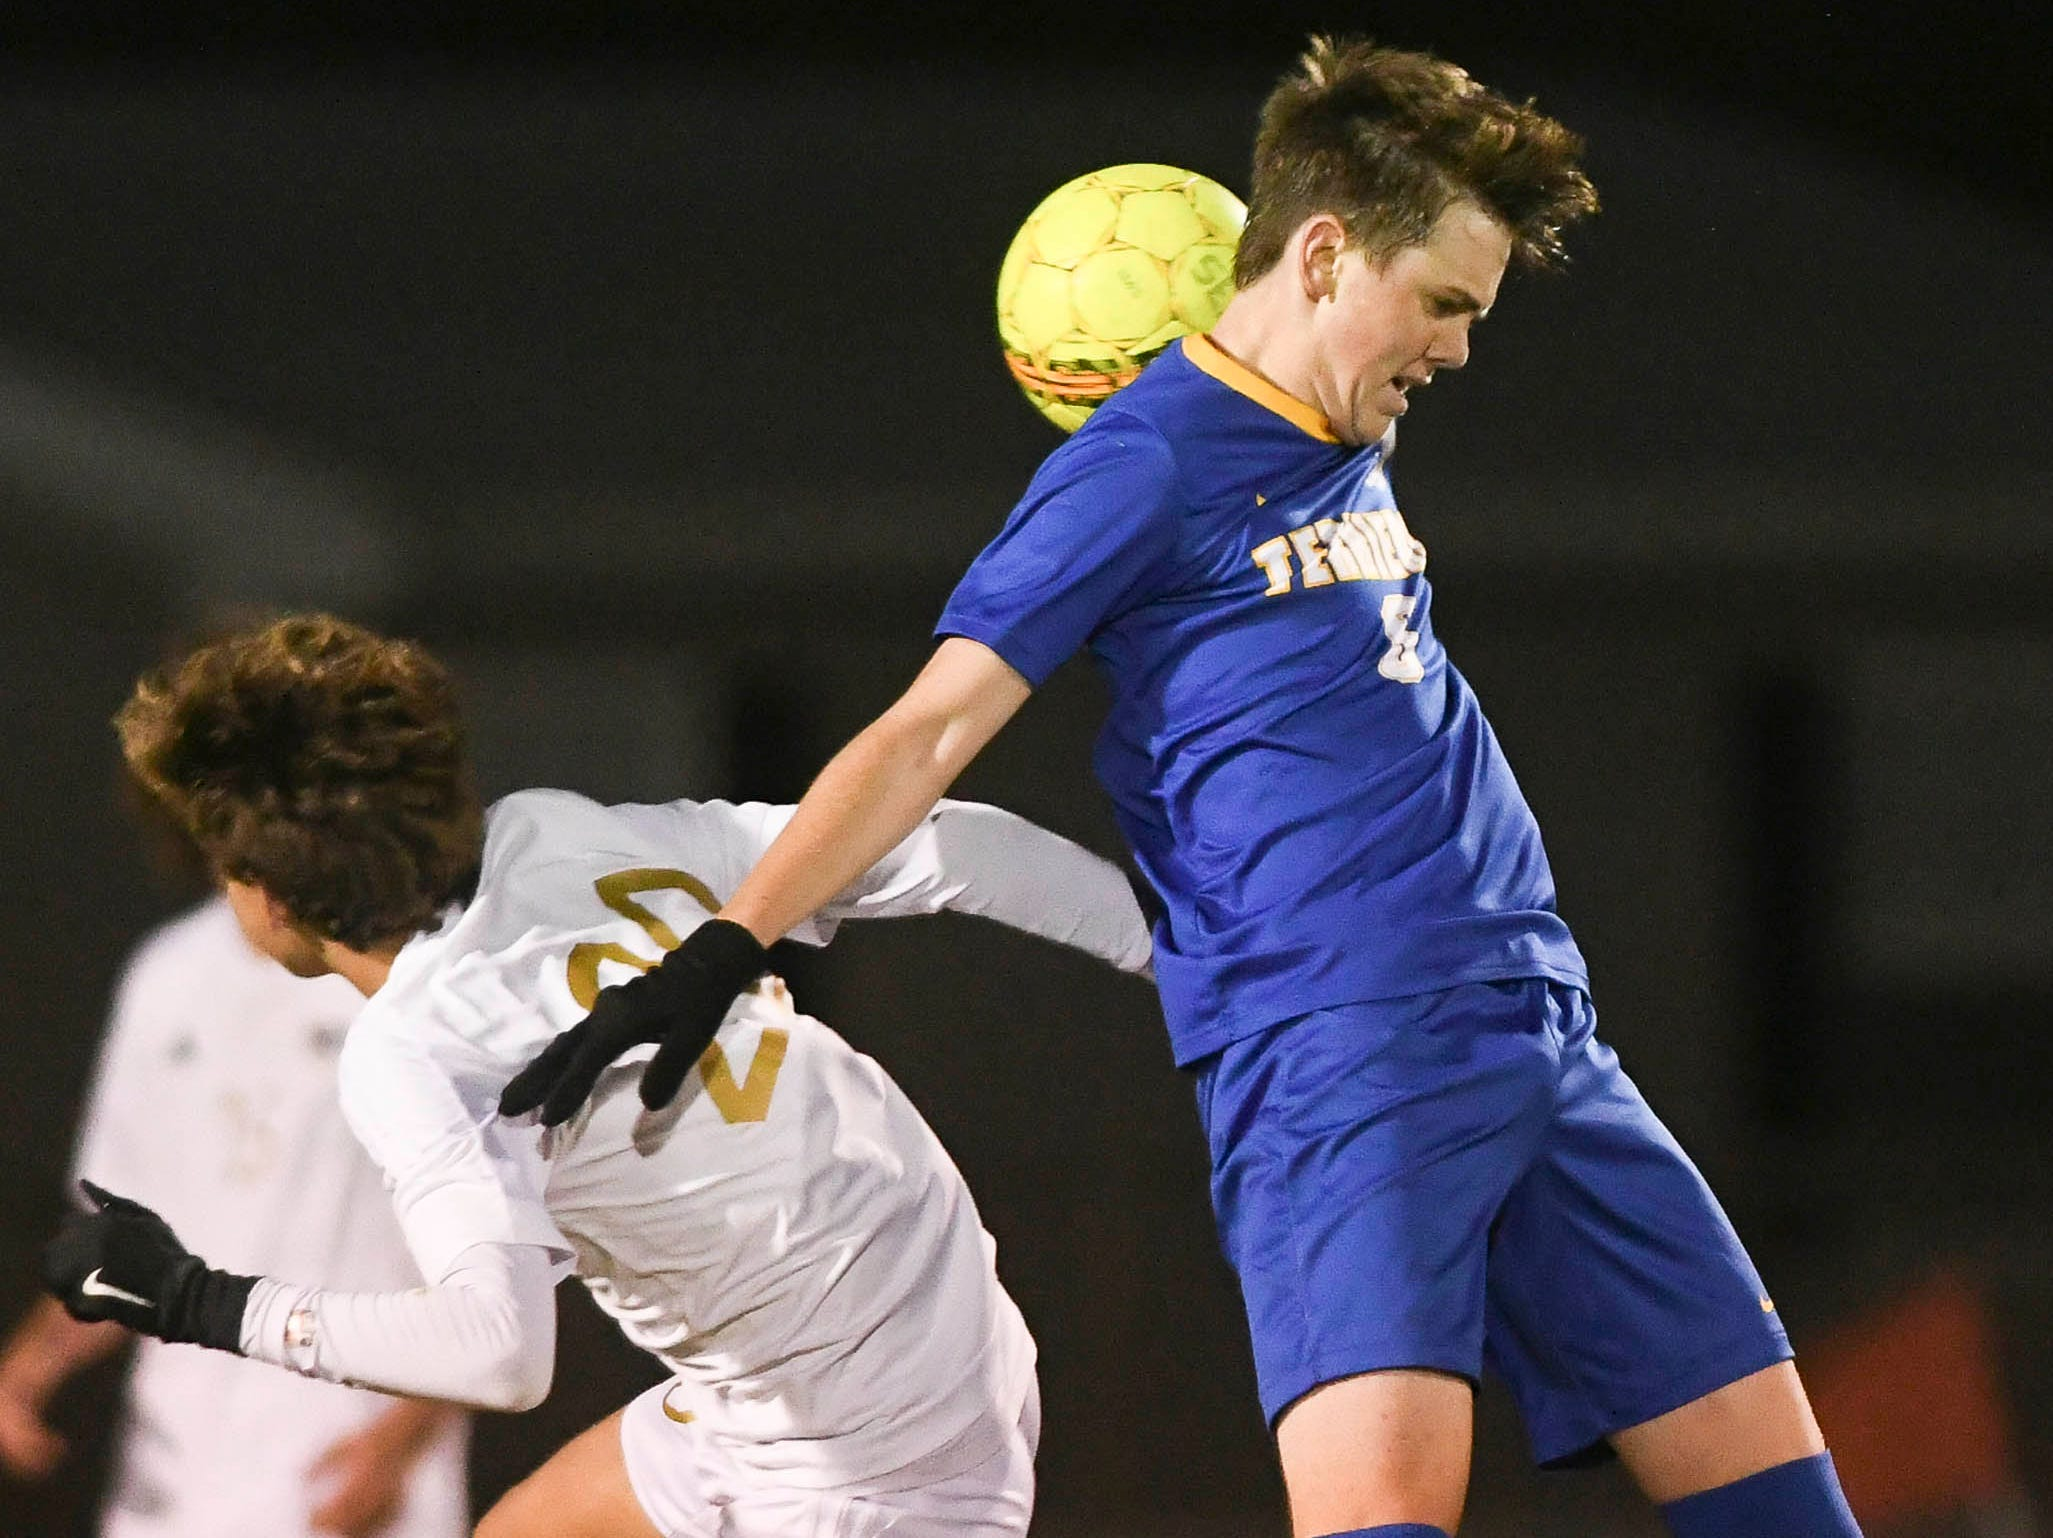 Eau Gallie's Logan Supernaw (20) and Josh Fox of Titusville go for a header during Wednesday's District 12, Class 3A semifinal at McLarty Stadium